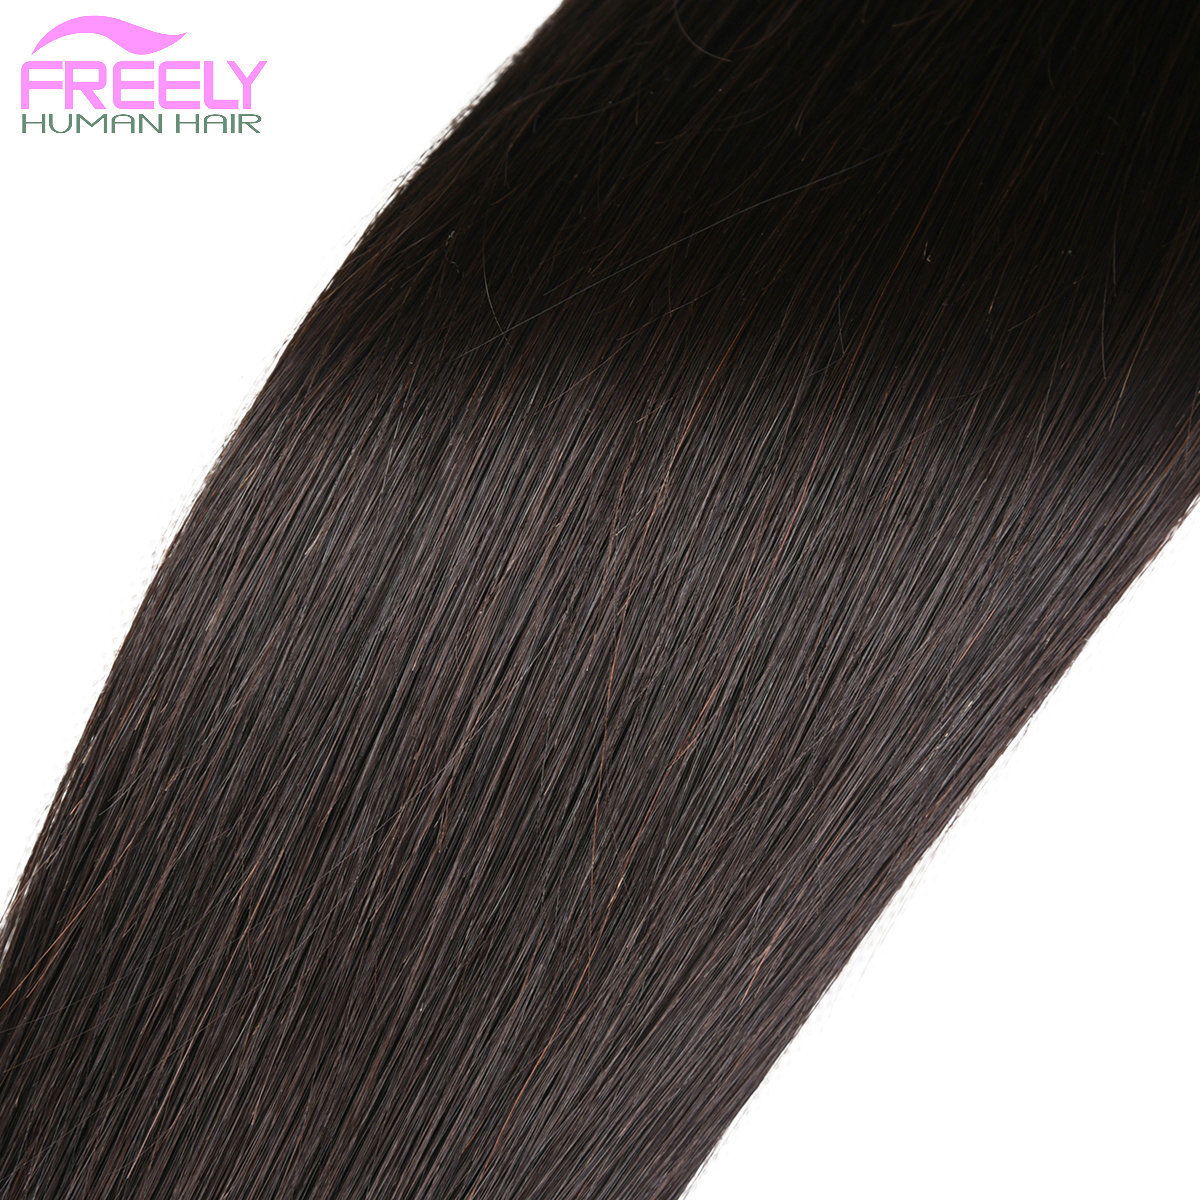 3 Bundles 16 18 20 inch  Straight Human Hair Extensions Unpr